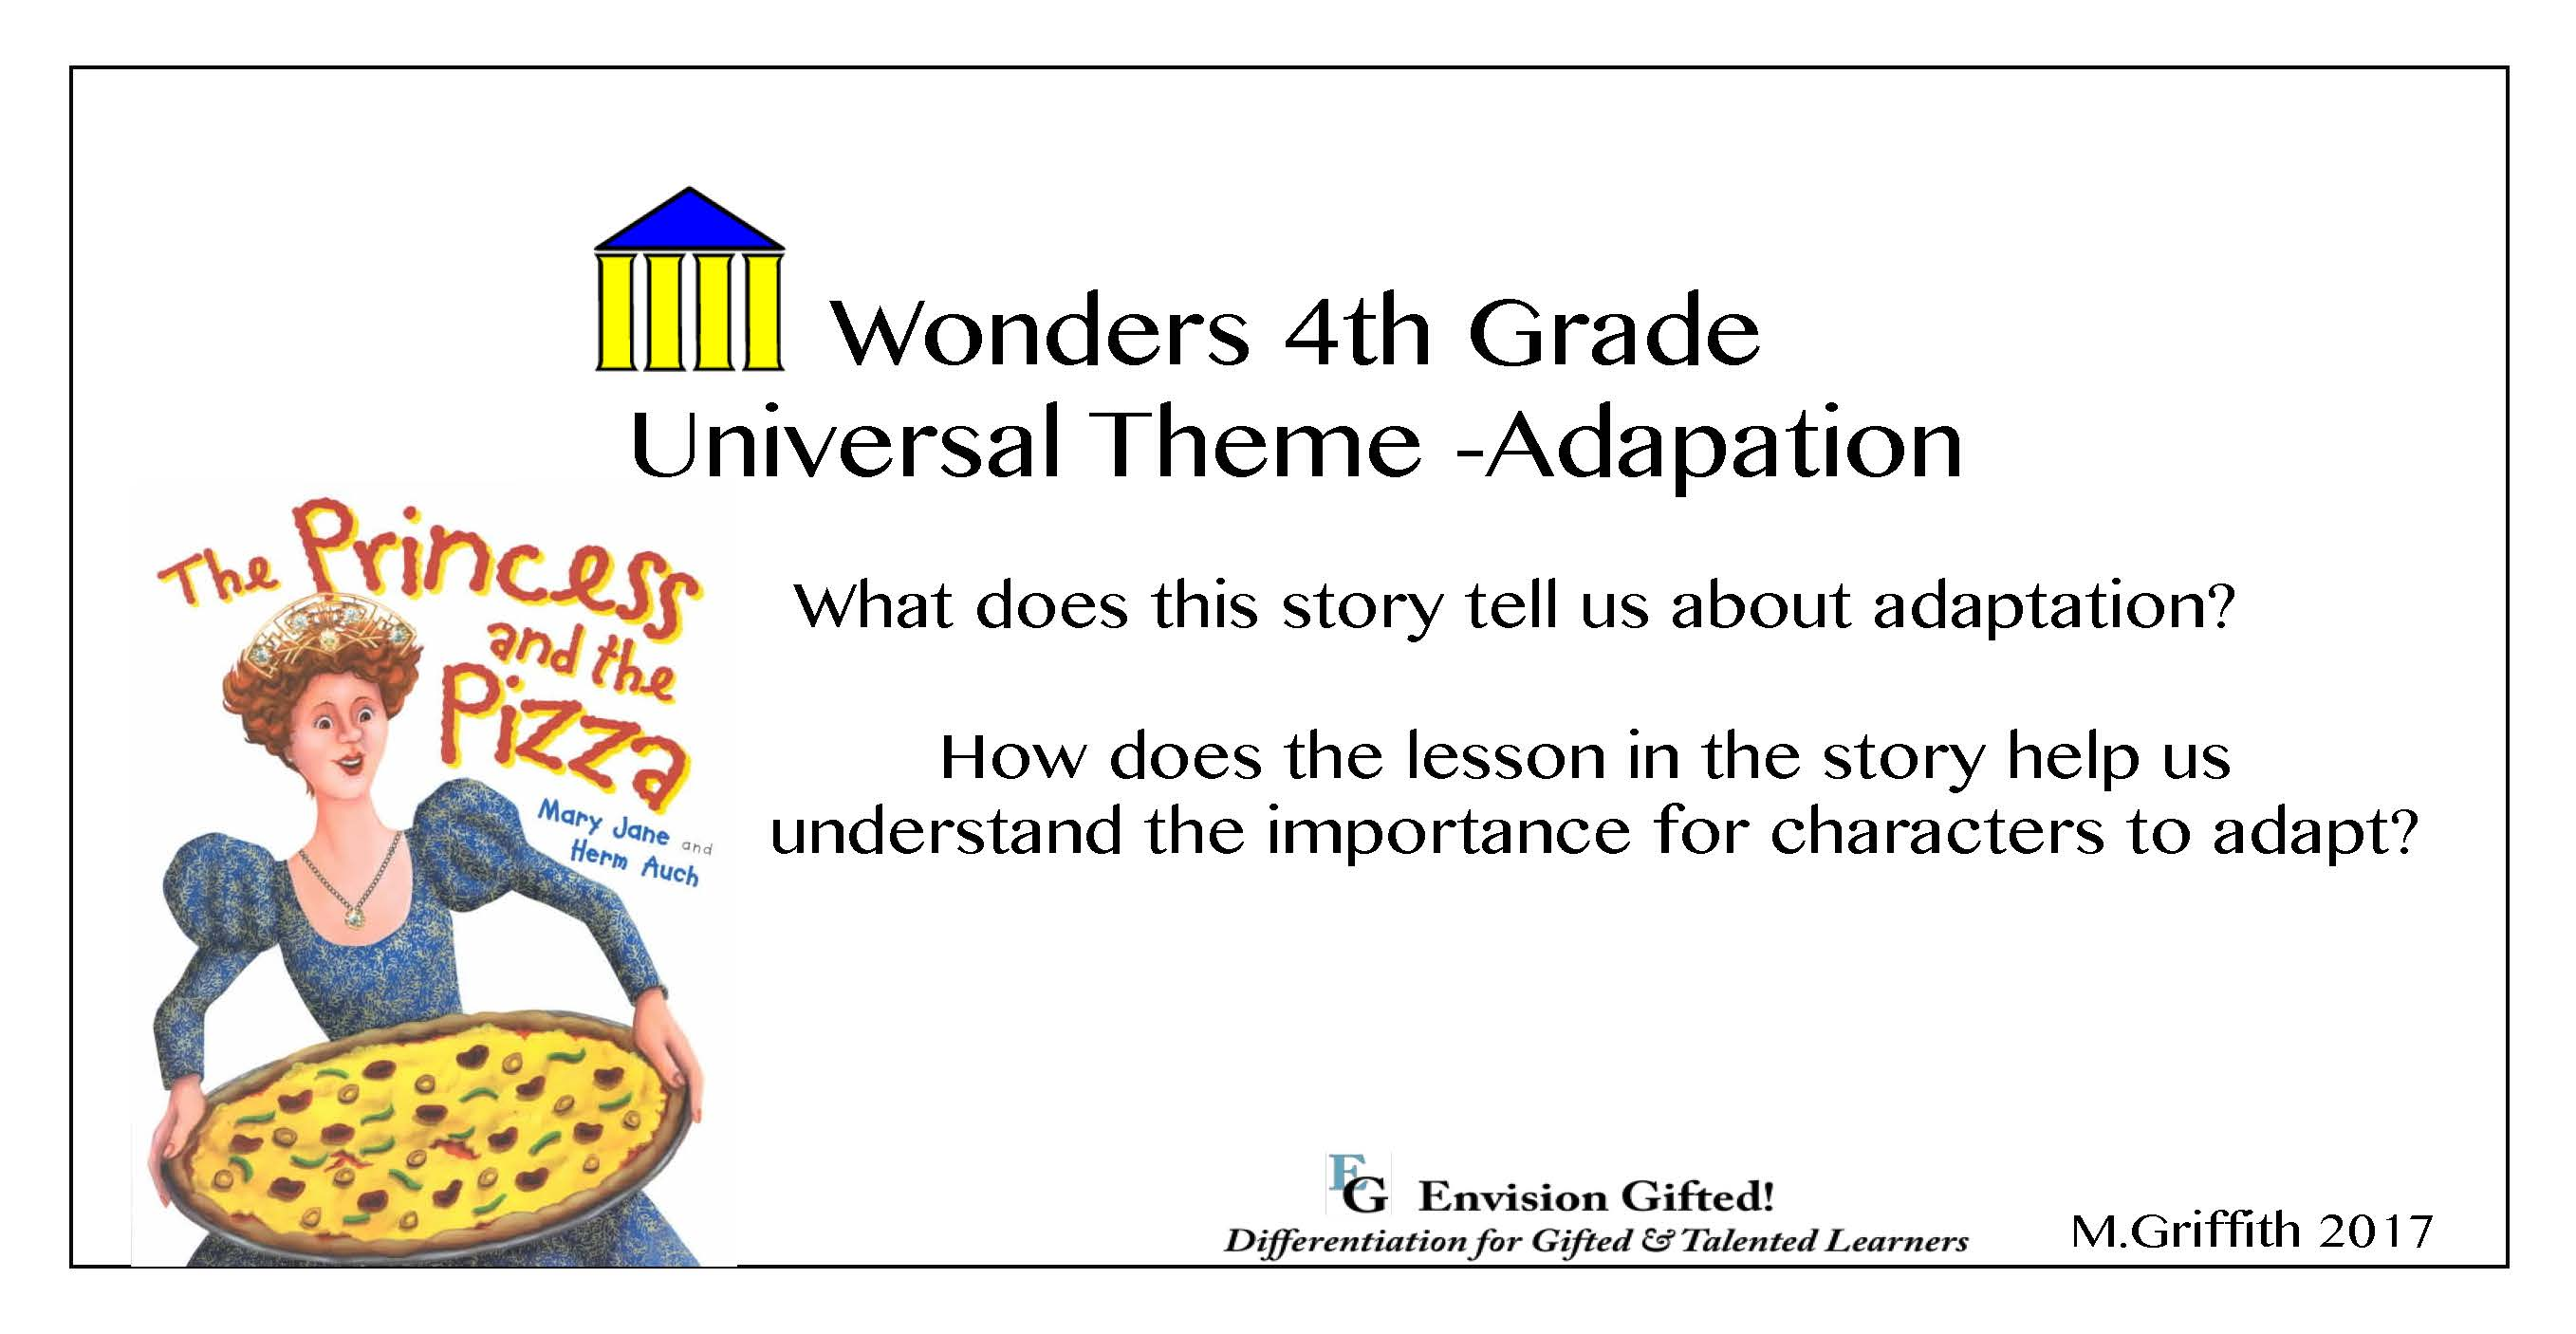 Envision Gifted. Universal Theme Adaptation. Wonders Grade 4. Pizza Princess